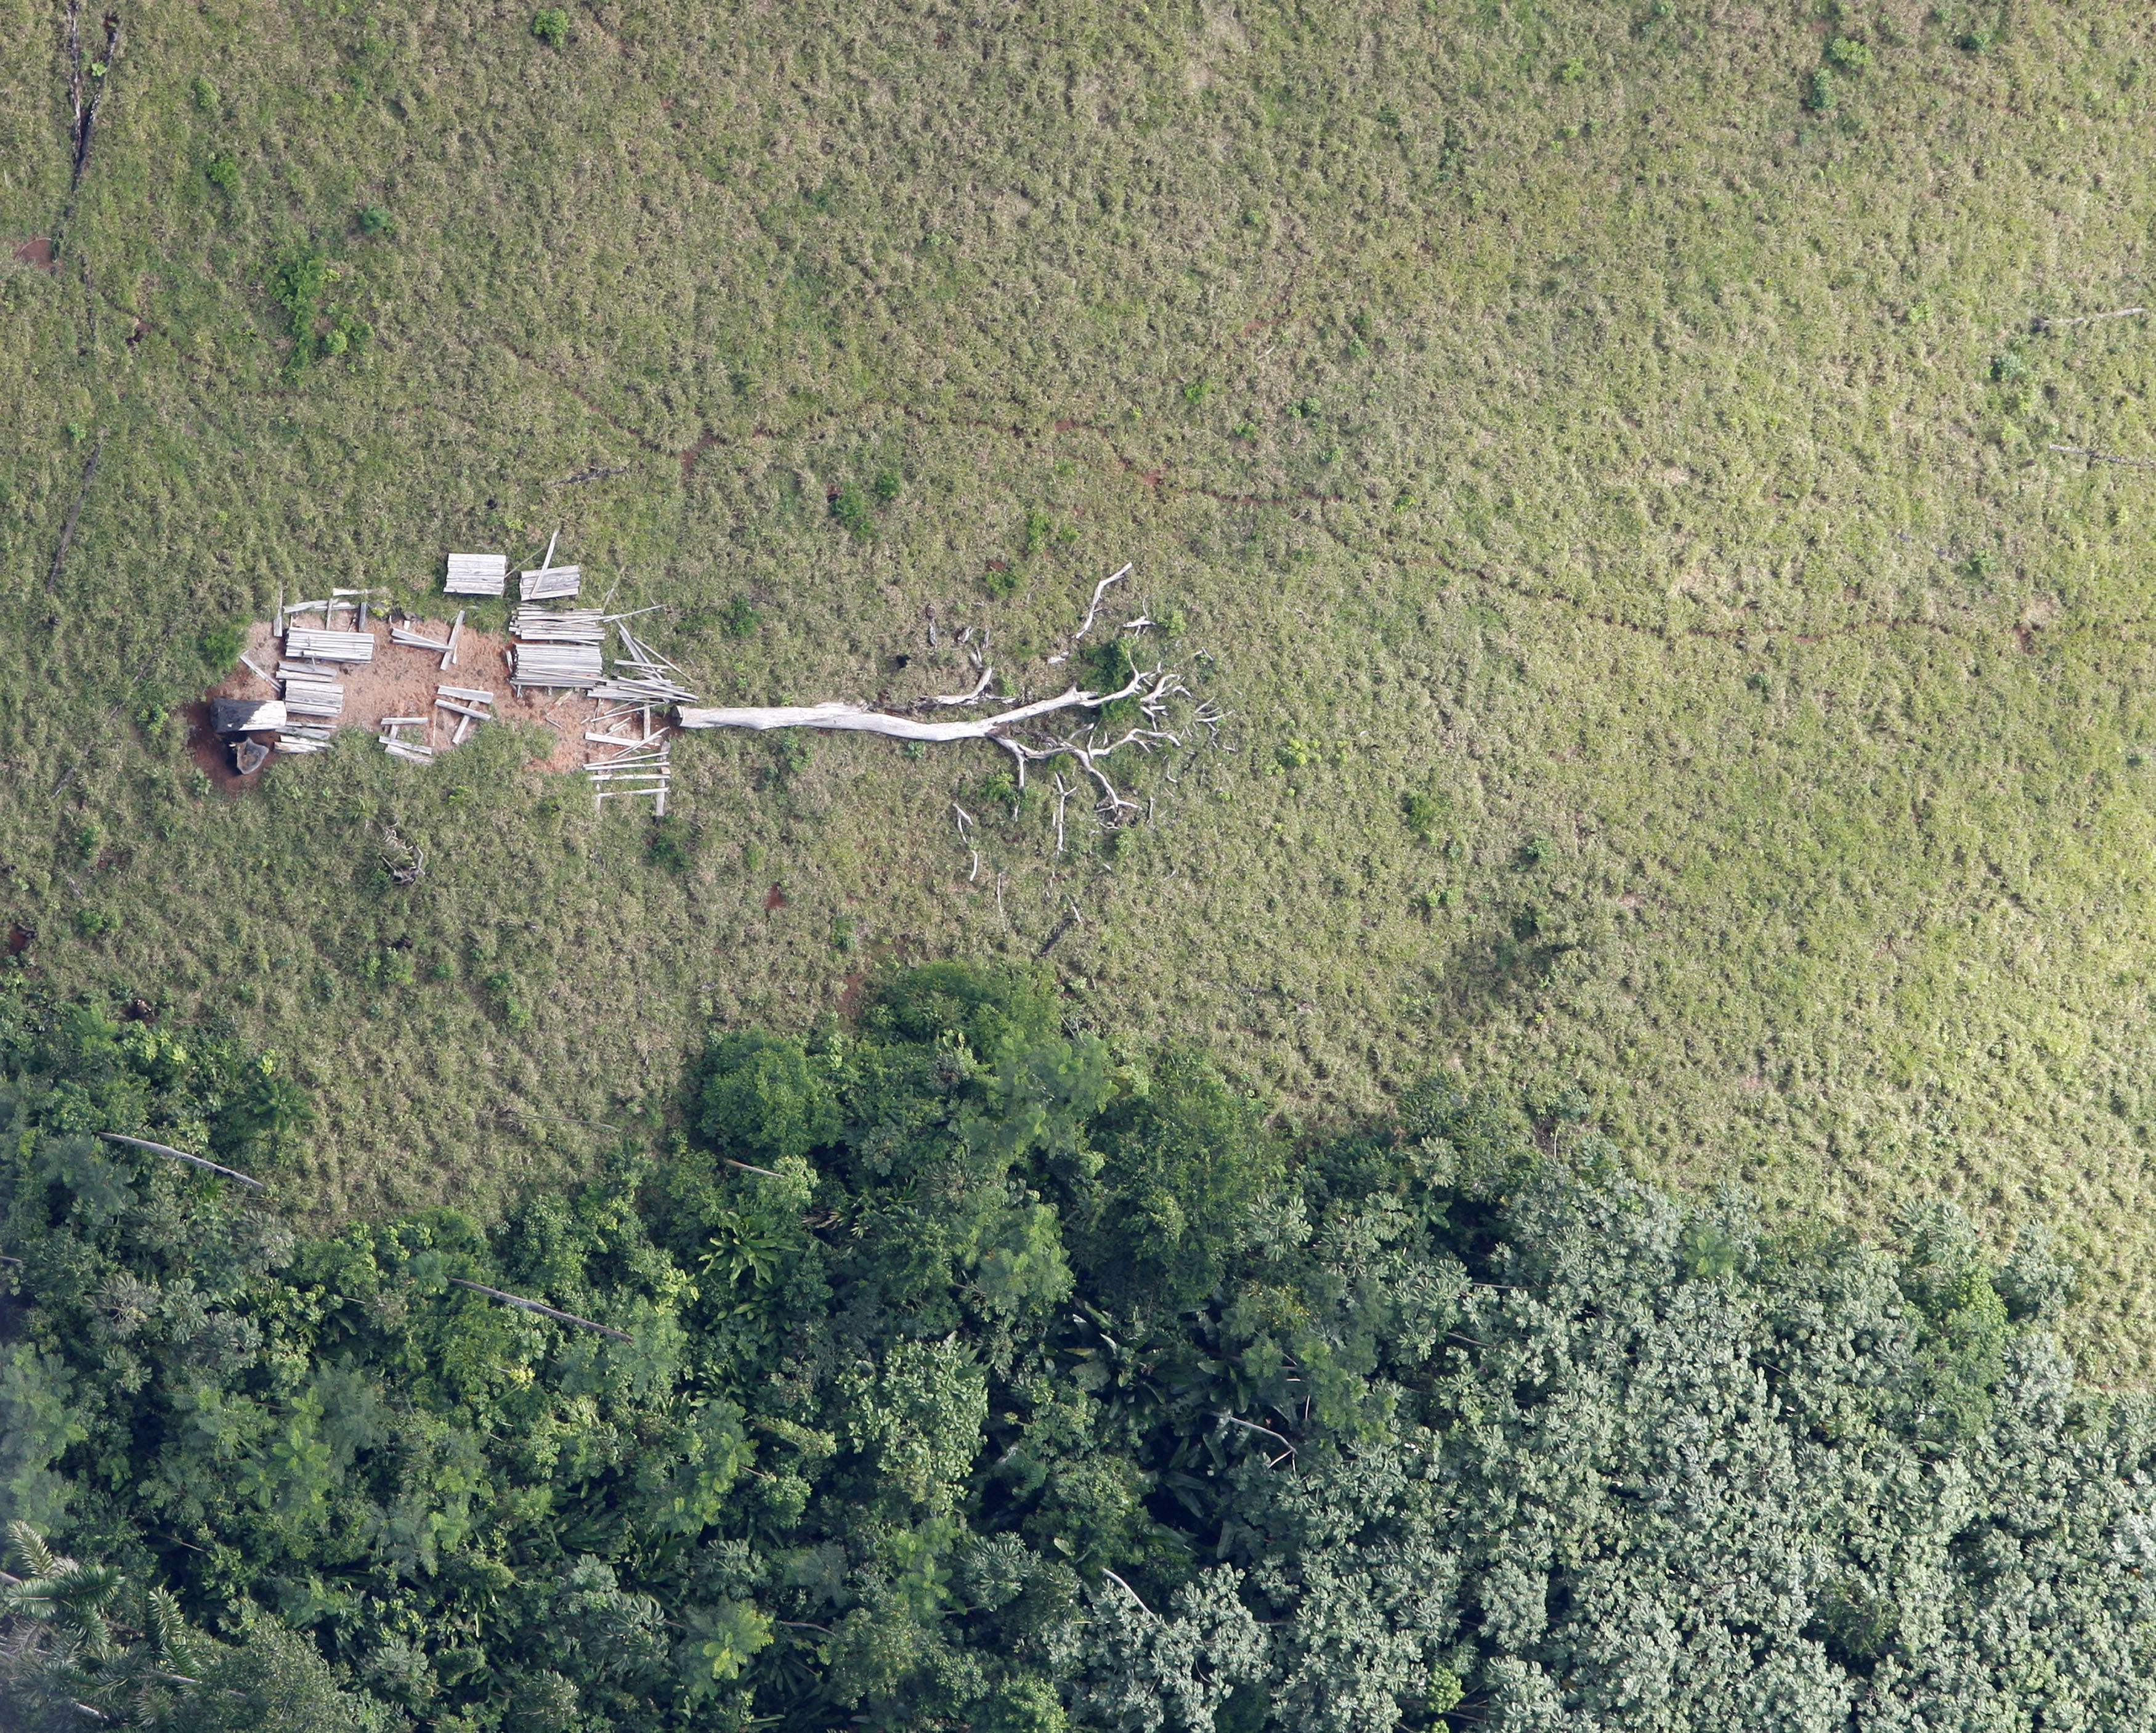 An aerial view of a deforested Amazonian jungle is seen close to Maraba, in Brazil's central state of Para in this May 3, 2009 file photo.  Soon thousands of cows will be chewing pasture on the freshly cleared land in Brazil's Amazon state of Para, just a tiny part of Brazil's 200-million-strong commercial cattle herd, the world's biggest, that makes it a beef superpower.  More than 70 million are in the Amazon area, three for every person. This is where the industry has grown fastest in recent years, a trend activists say is due to cheap land, widespread illegal clearing and weak government enforcement.